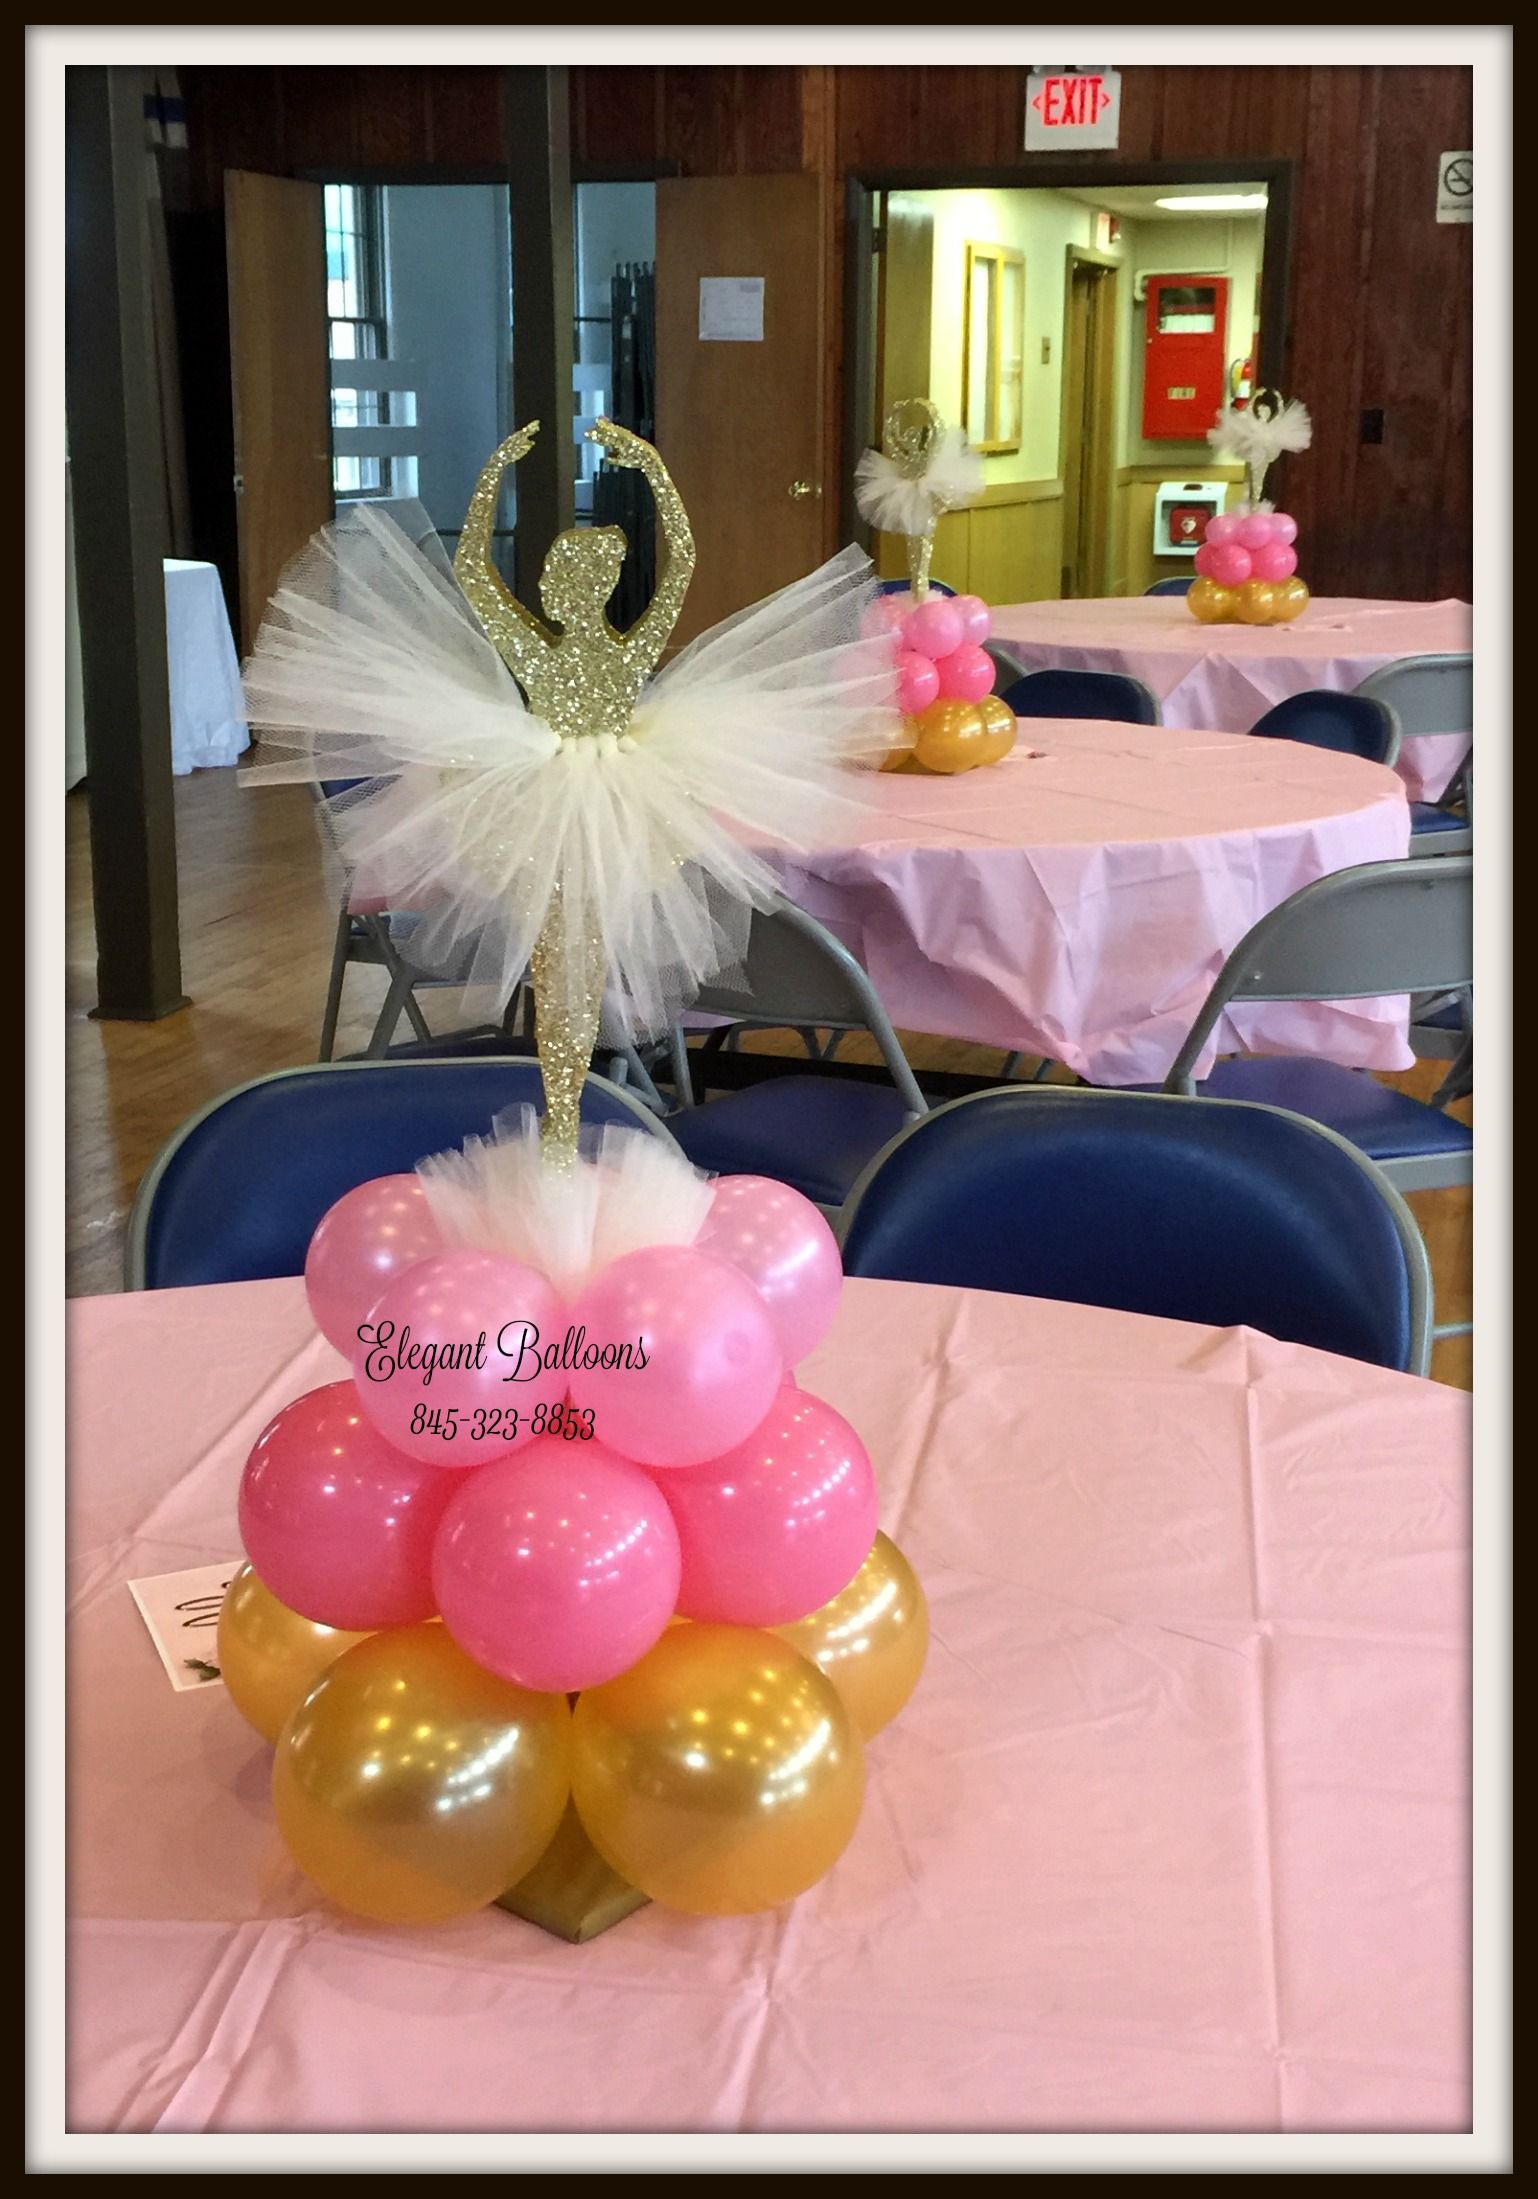 Liste Danse De Salon Ballerina First Birthday Balloons Centerpiece Elegantballoons